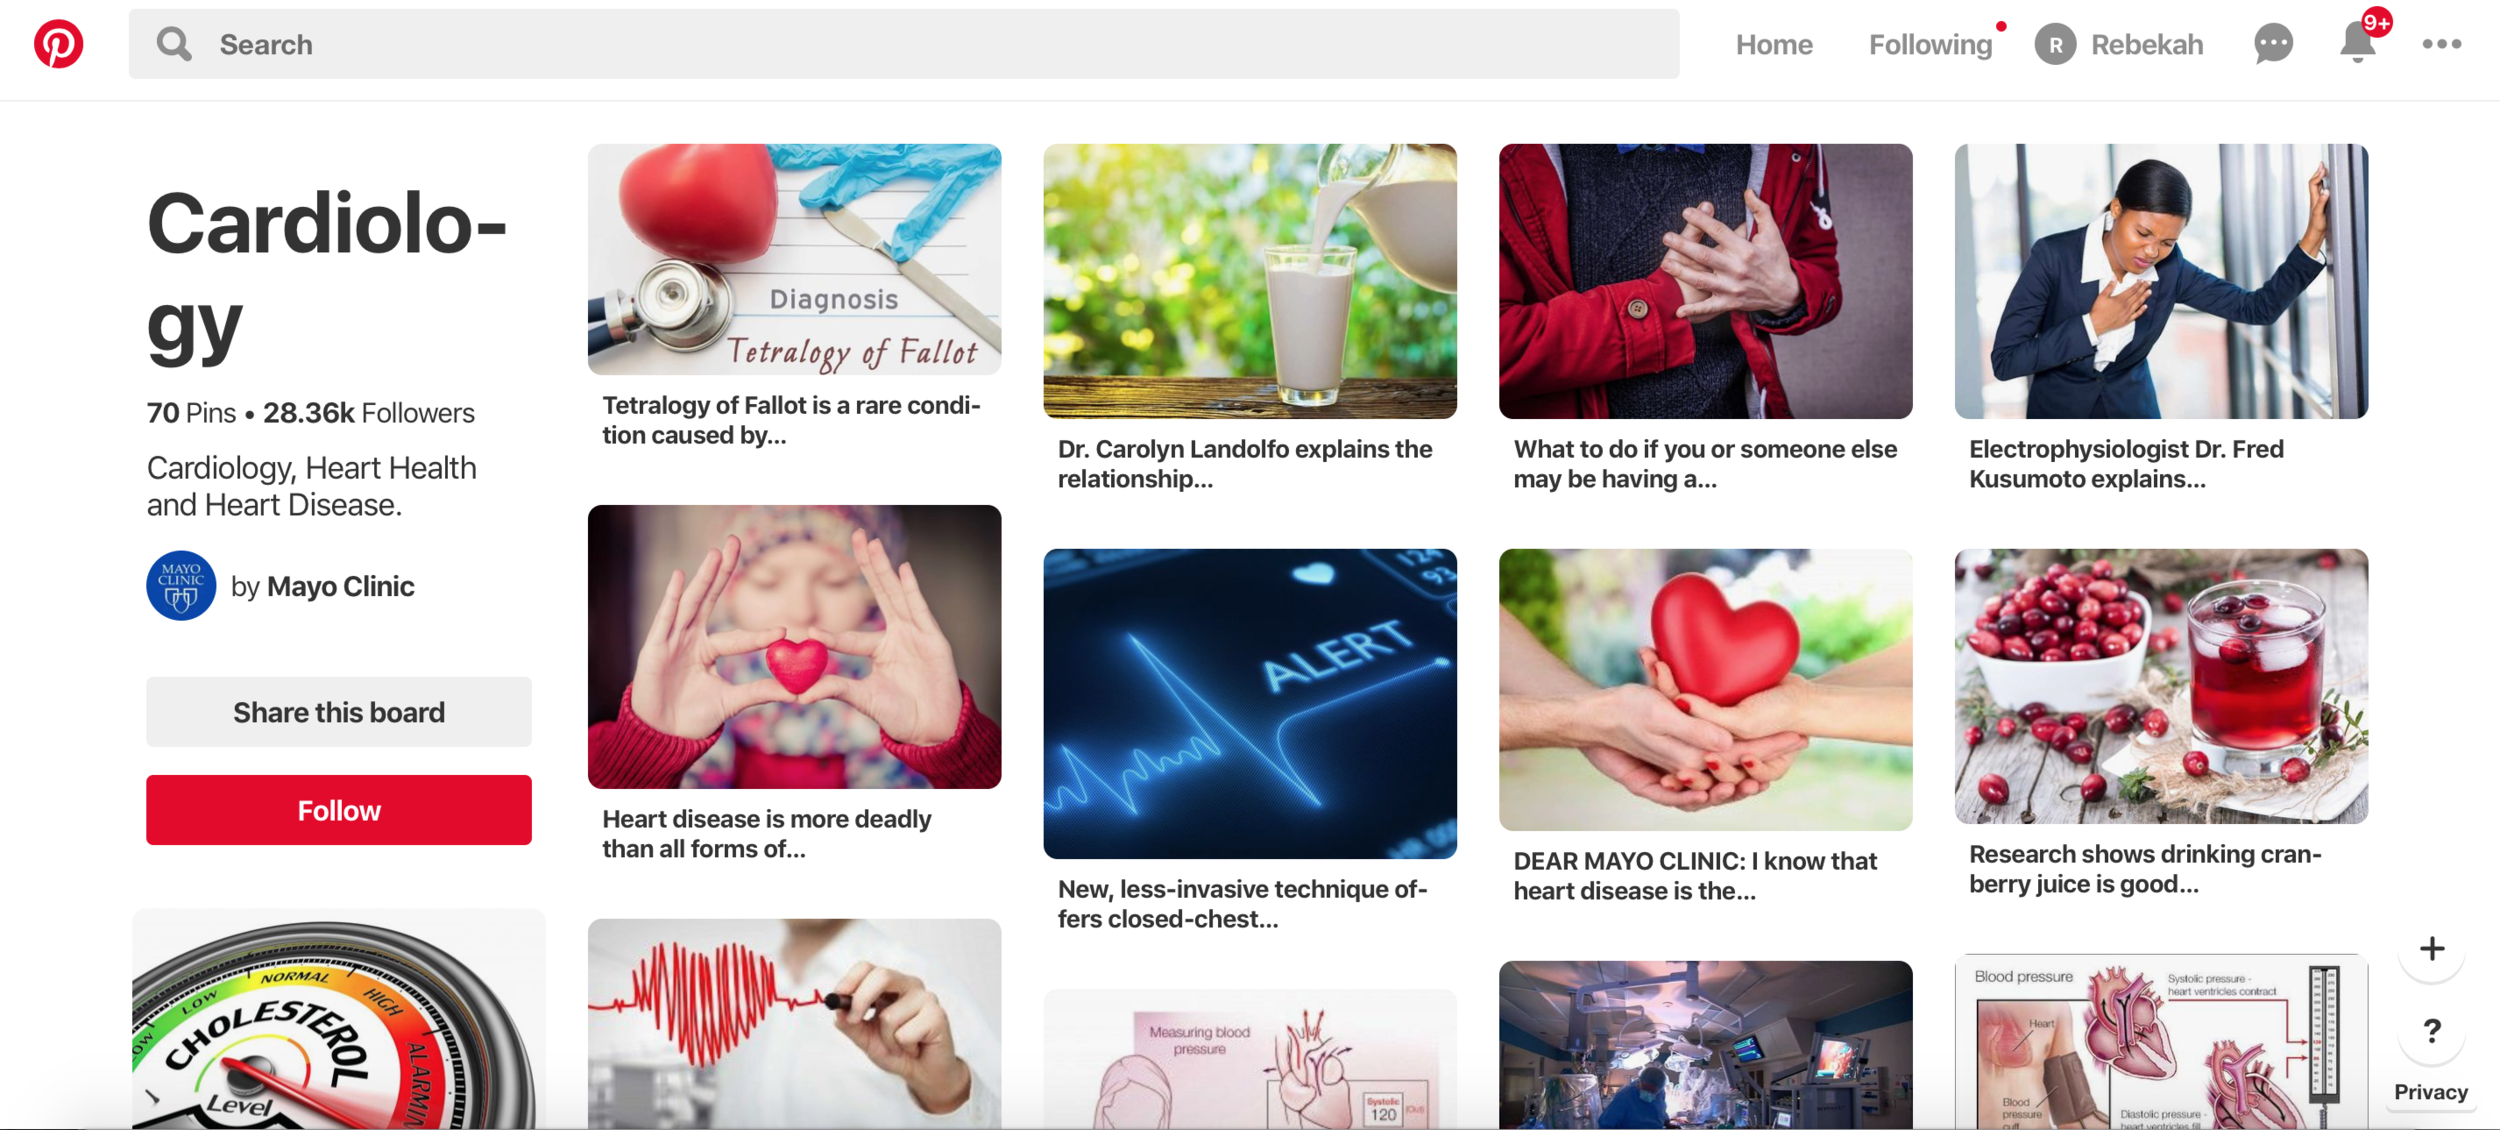 Cardiology Pinterest Board By The Mayo Clinic Shows Great Social Media